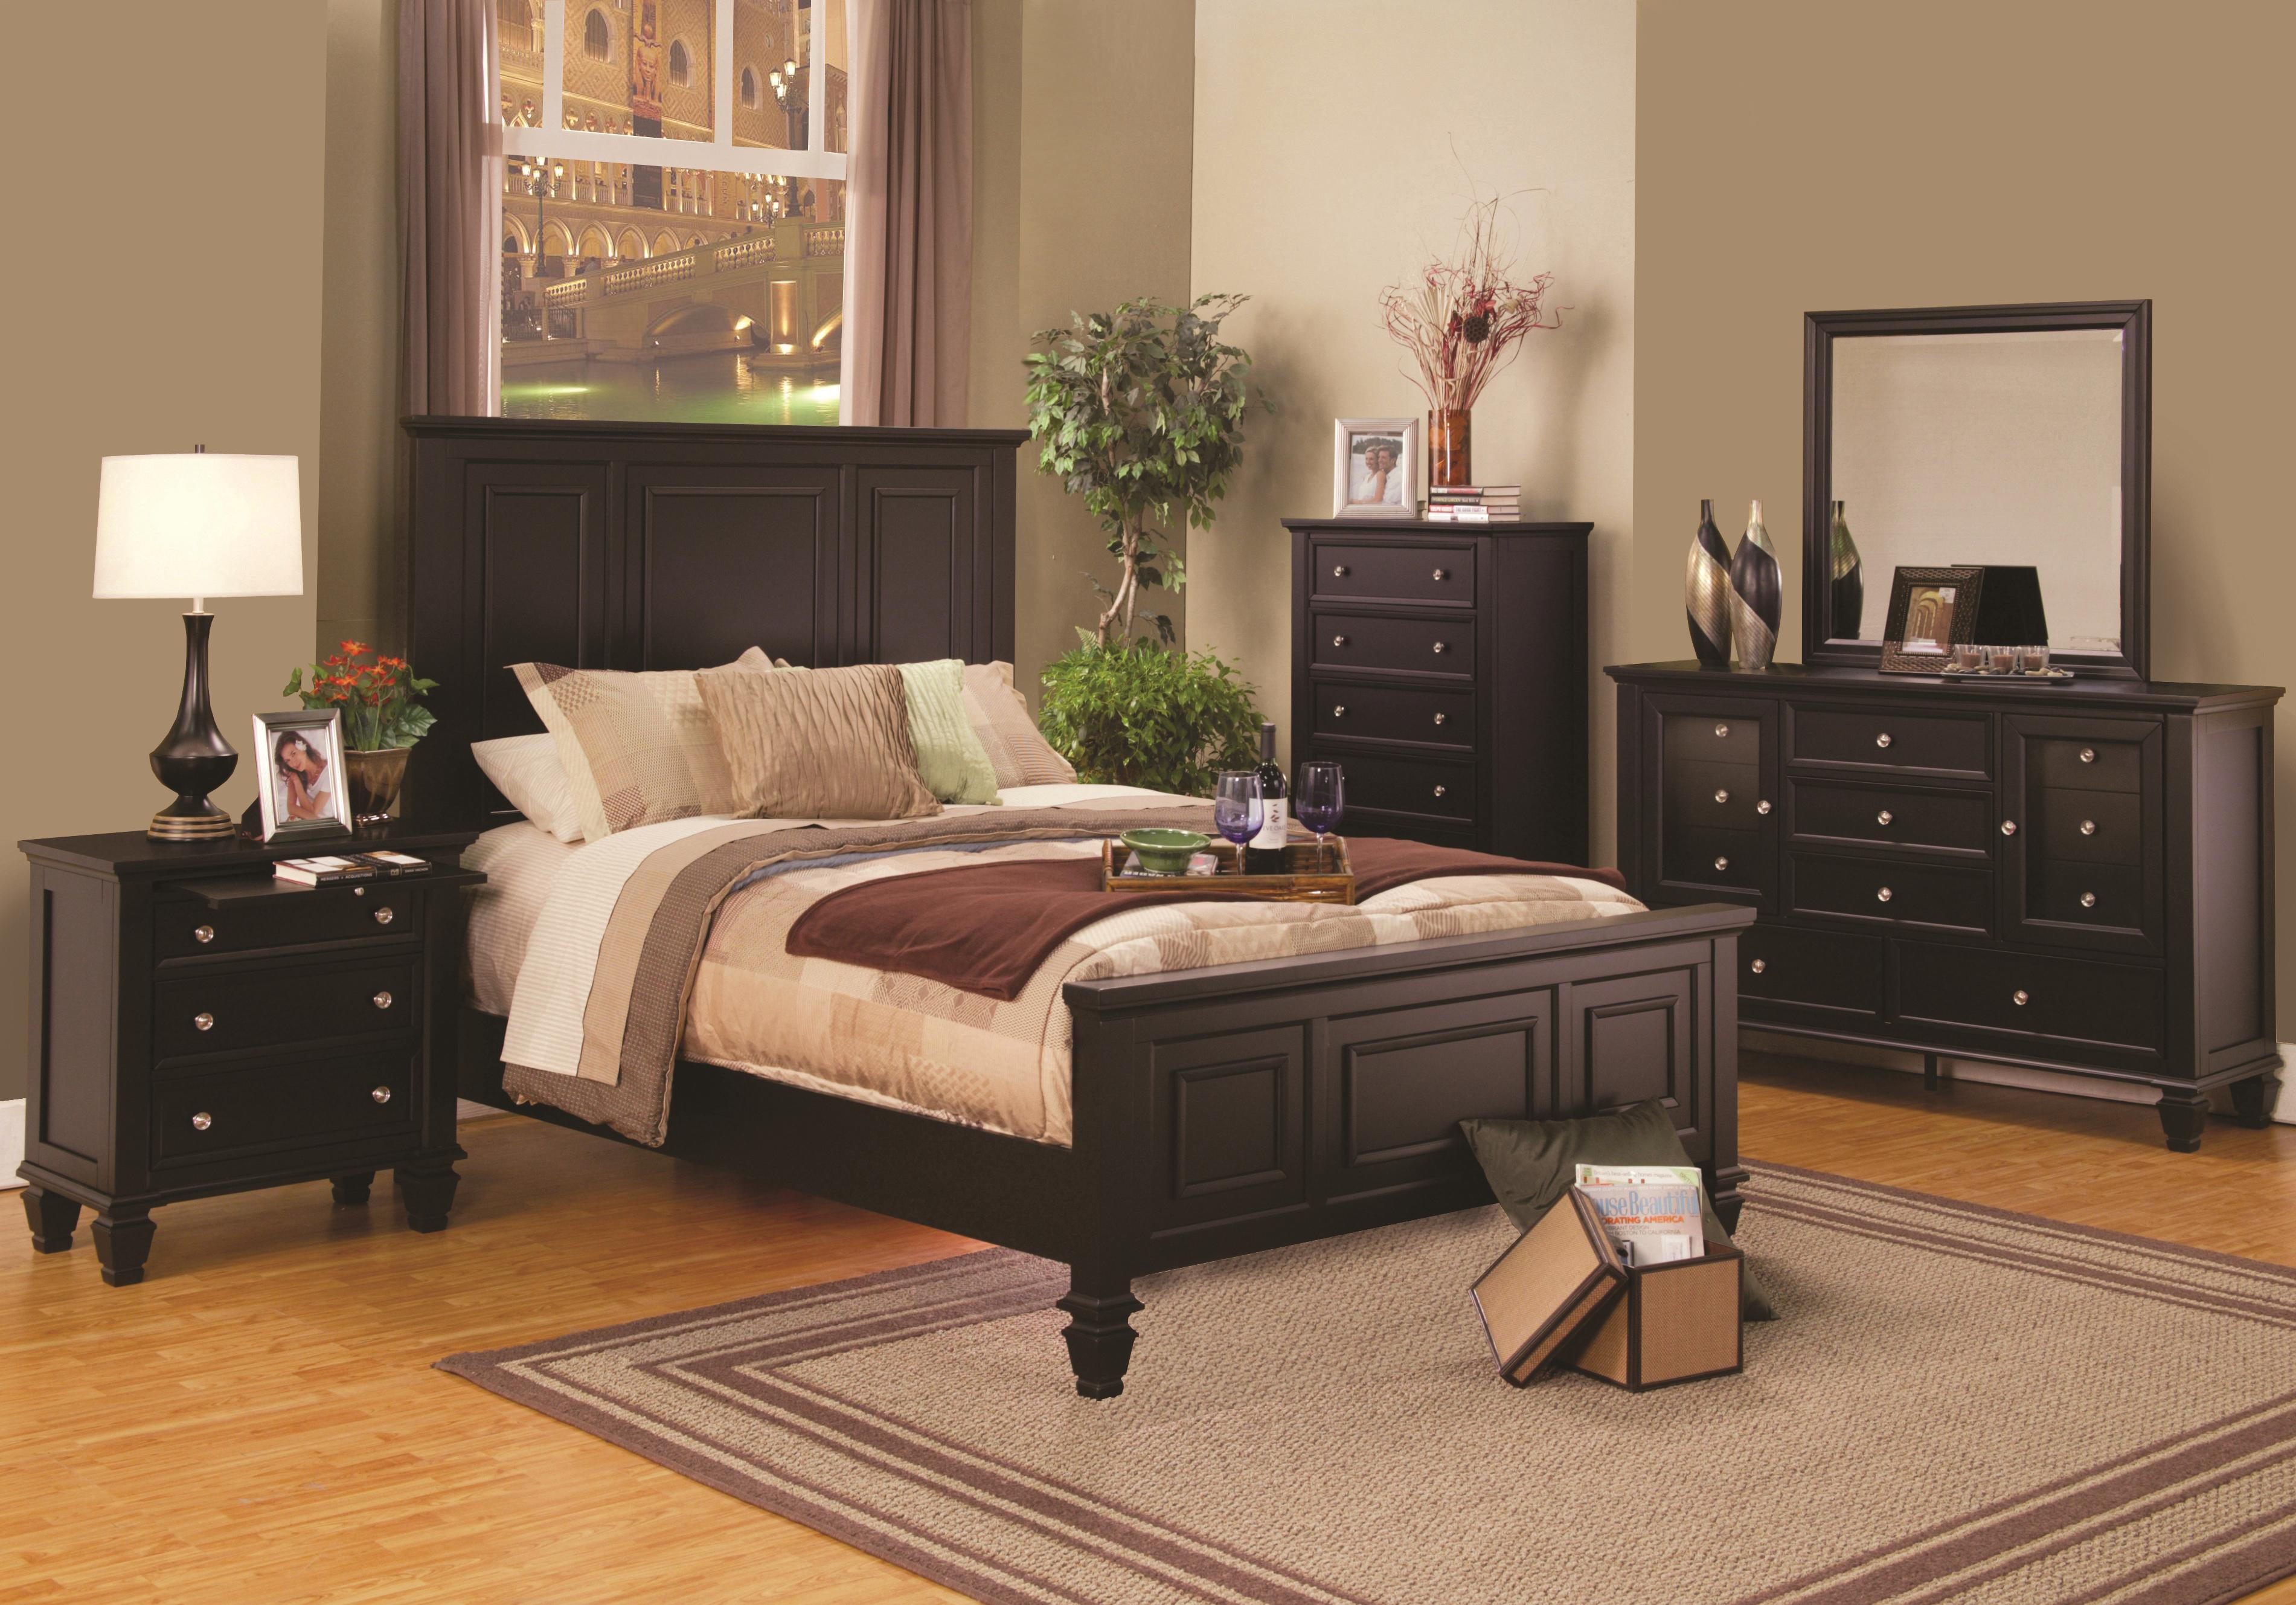 King size cappuccino wood panel bed bedroom furniture 4pcs - King size bedroom set with mattress ...